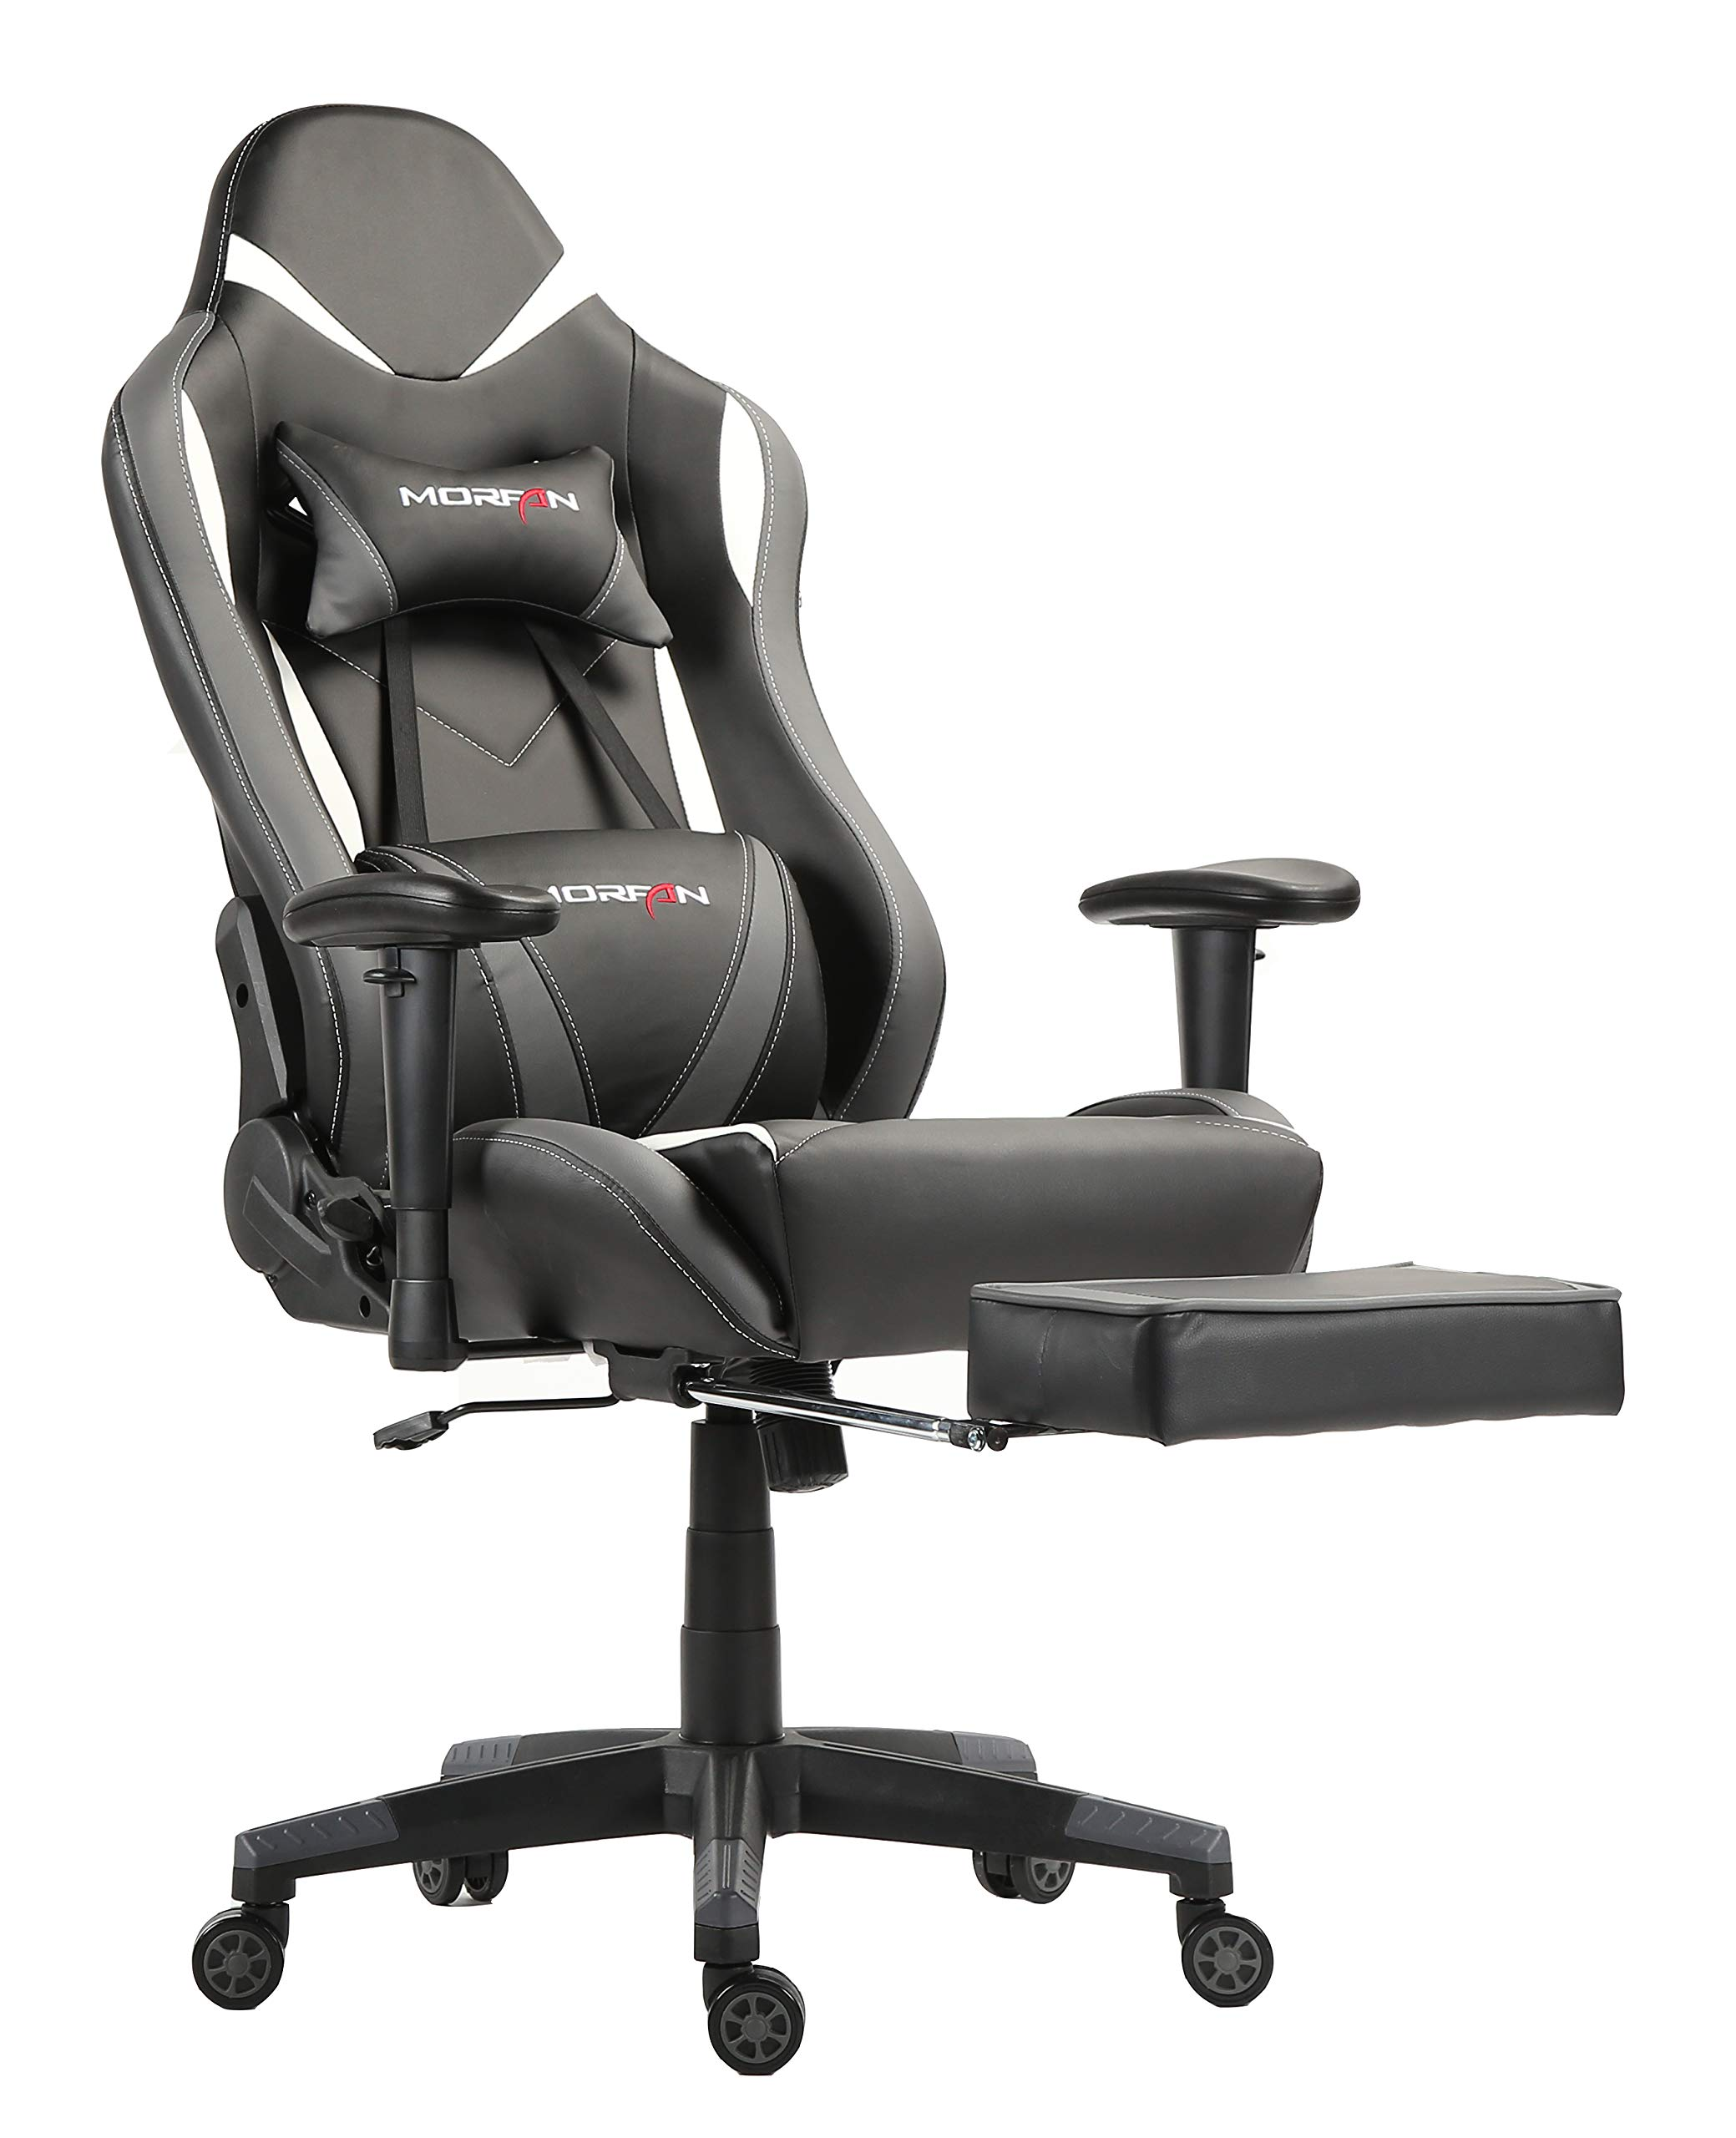 MORFAN Gaming Chair Large Size High Back Office Chair with Footrest Computer Desk Chair Like Silver (Grey)